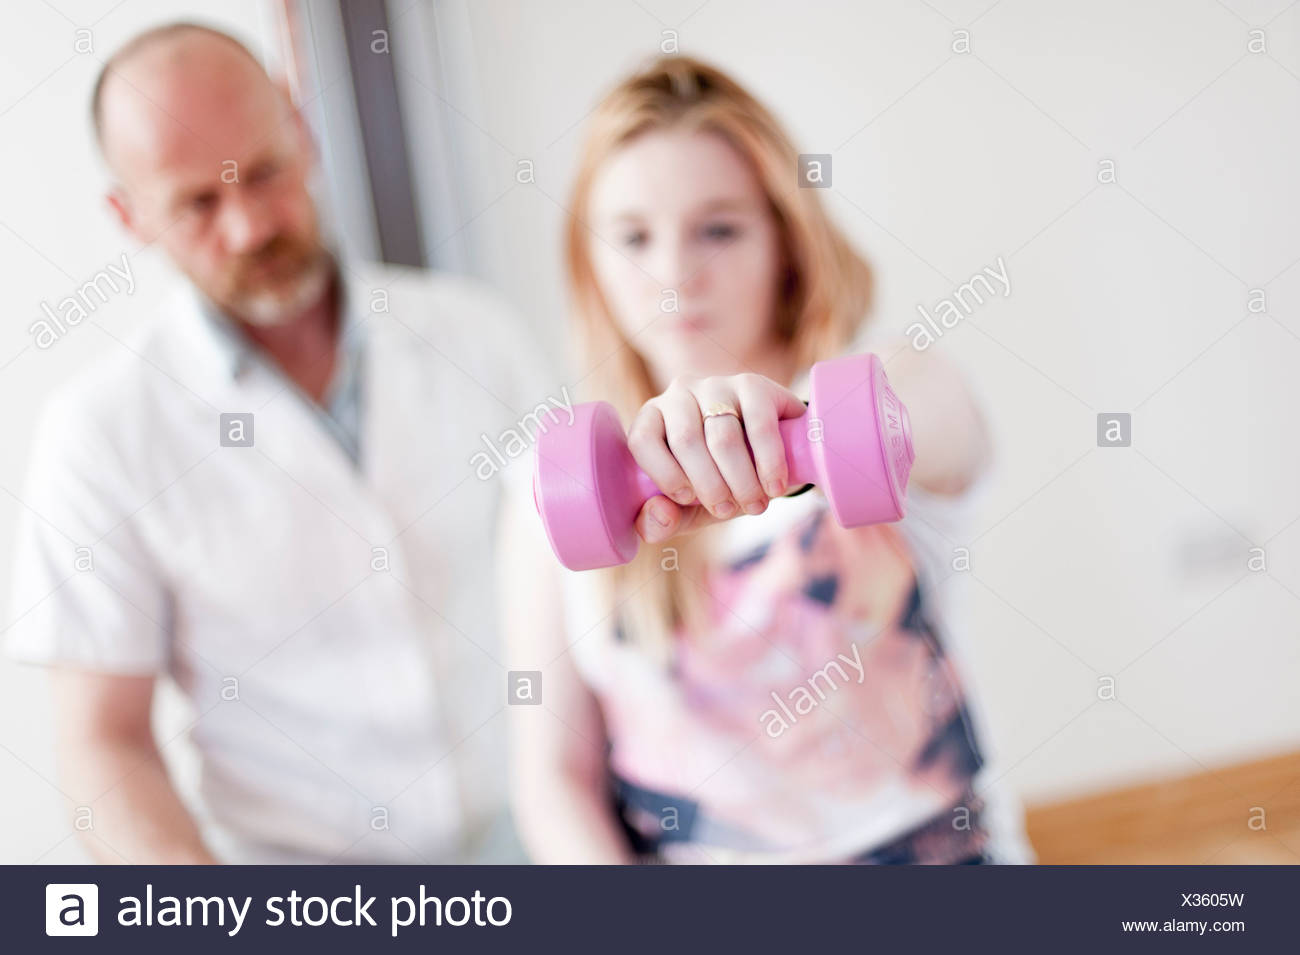 Young woman exercising with dumb bells, guided by mature man - Stock Image